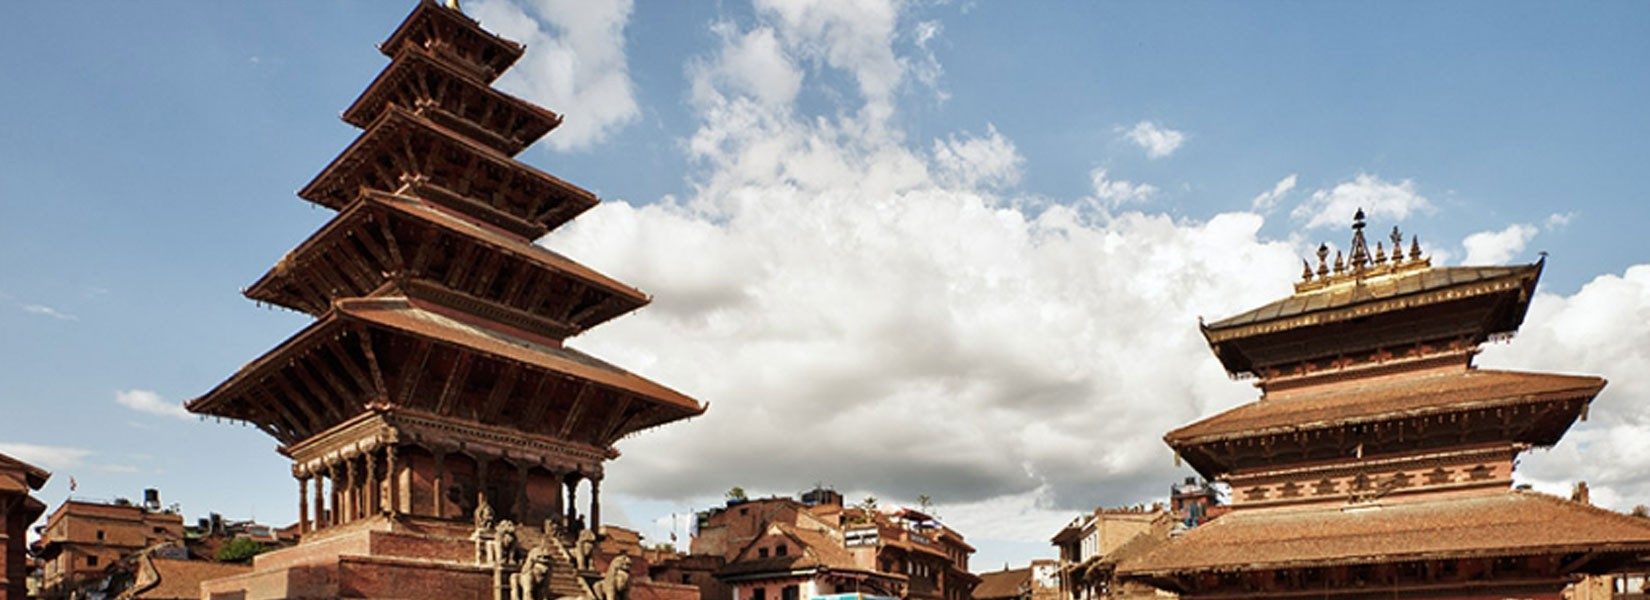 Tour around Kathmandu Heritage Sites